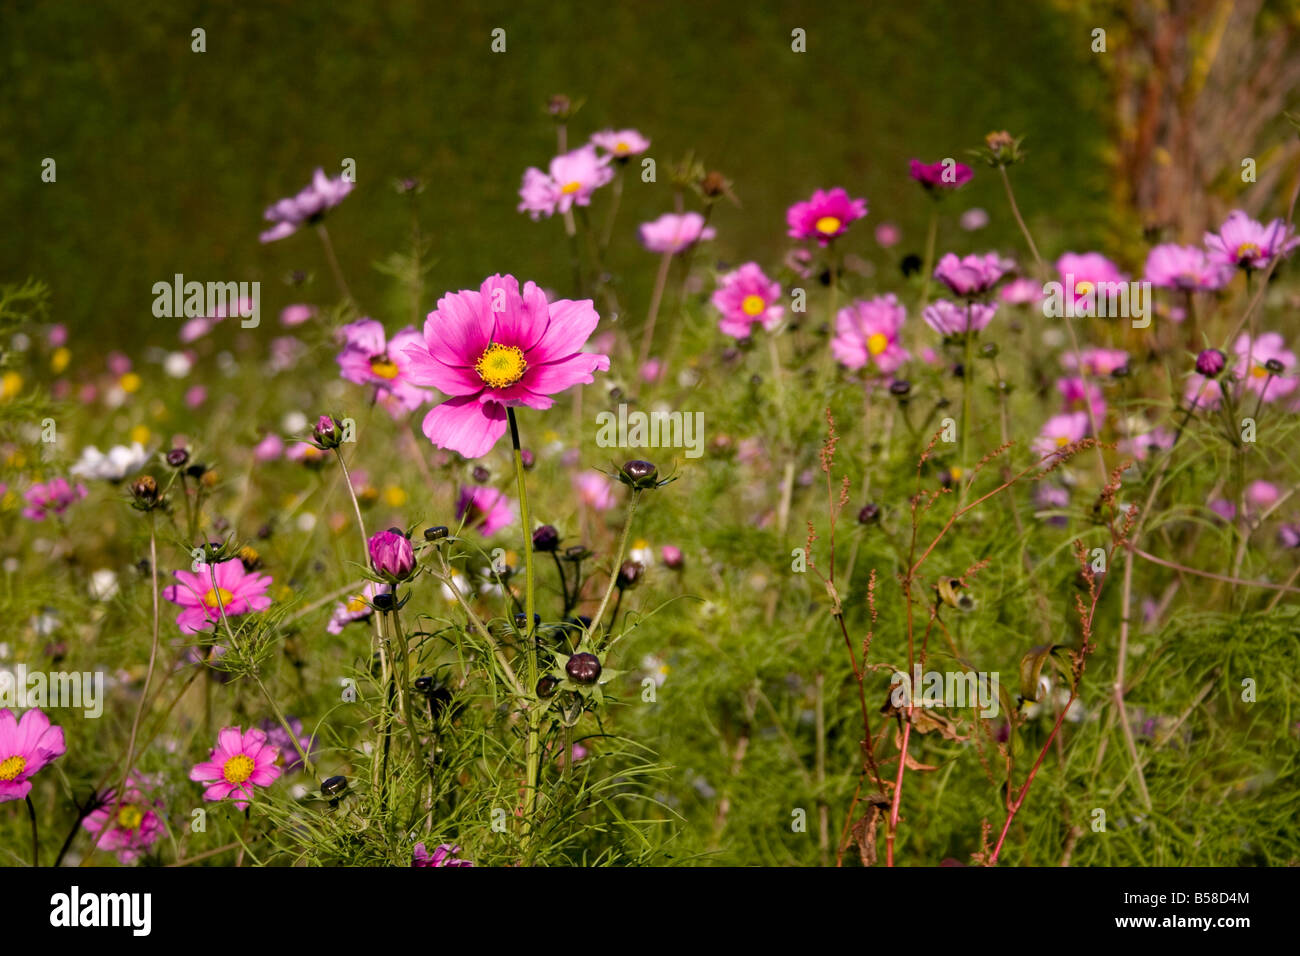 Tall Pink Flowers Stock Photos Tall Pink Flowers Stock Images Alamy